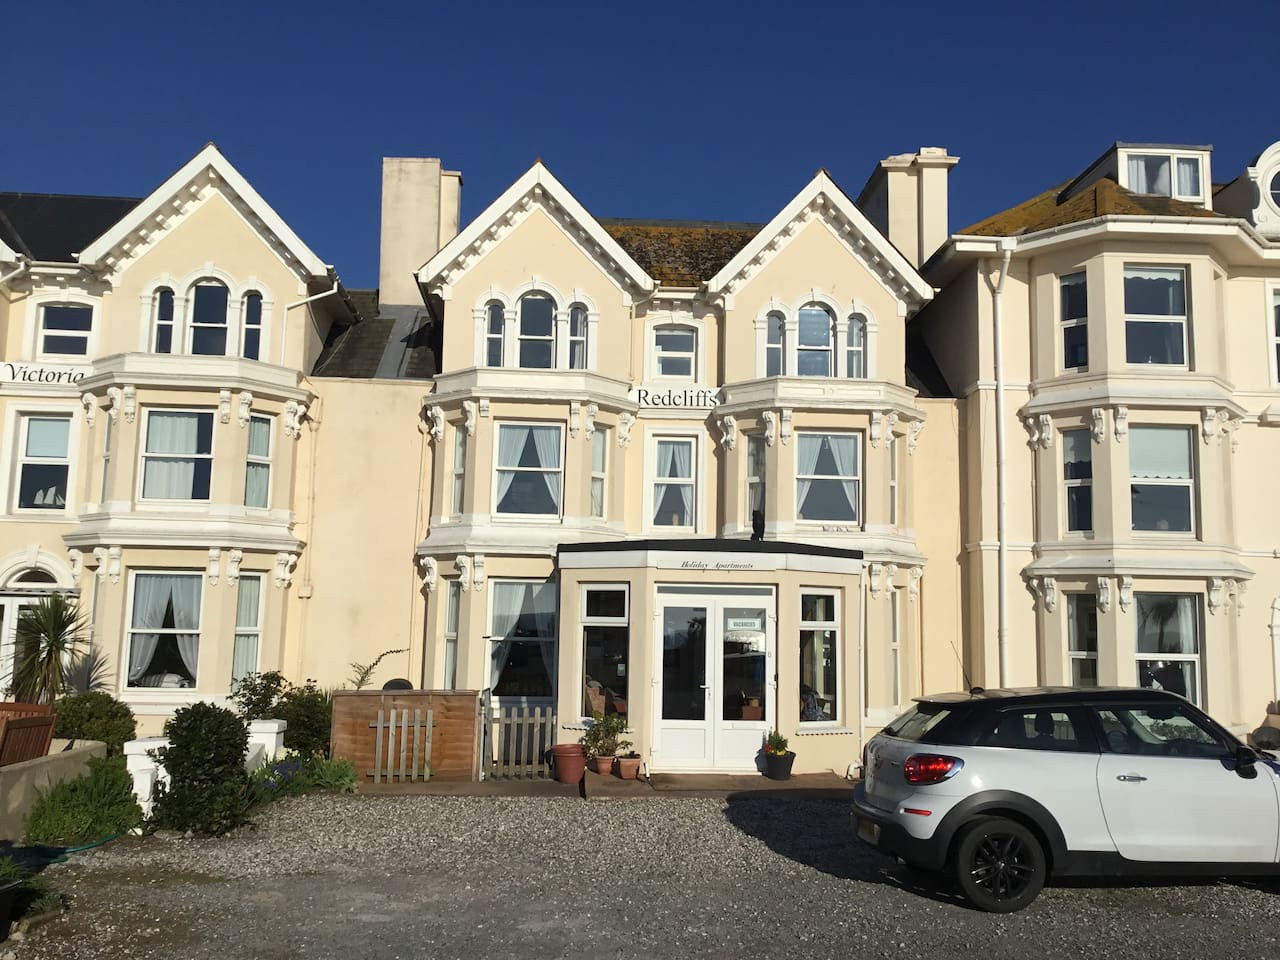 Redcliffs is a beautiful Victorian building situated right on the seafront